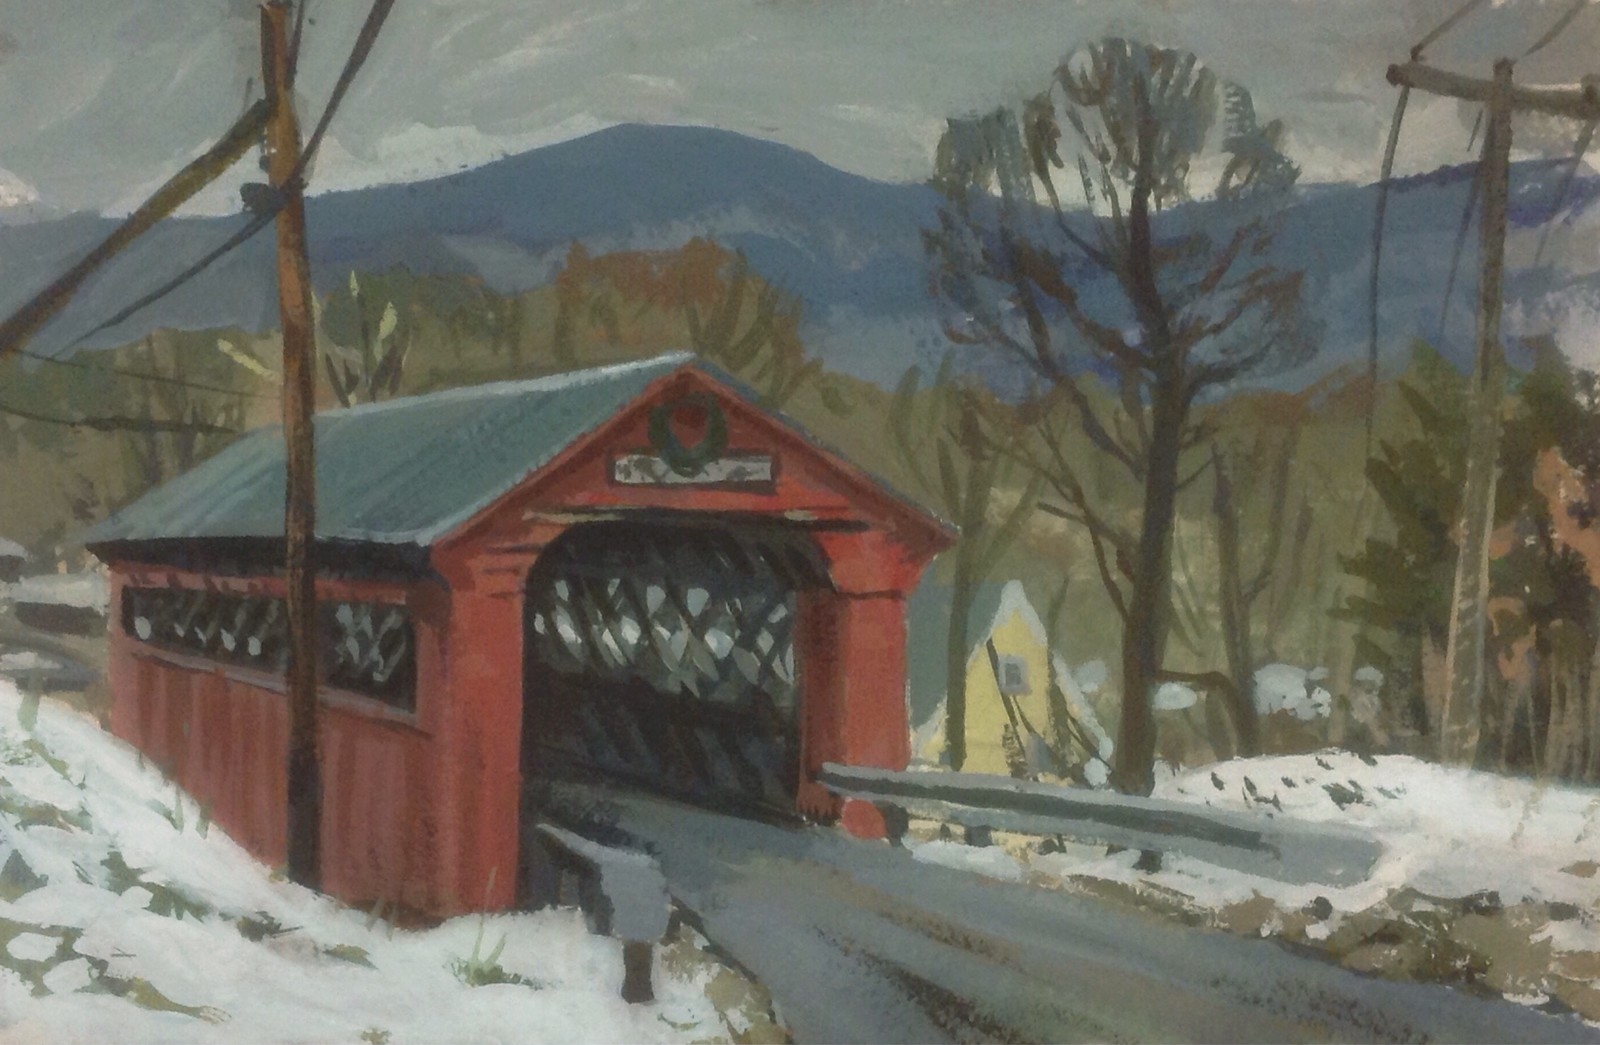 Arlington covered bridge, Vermont, USA.